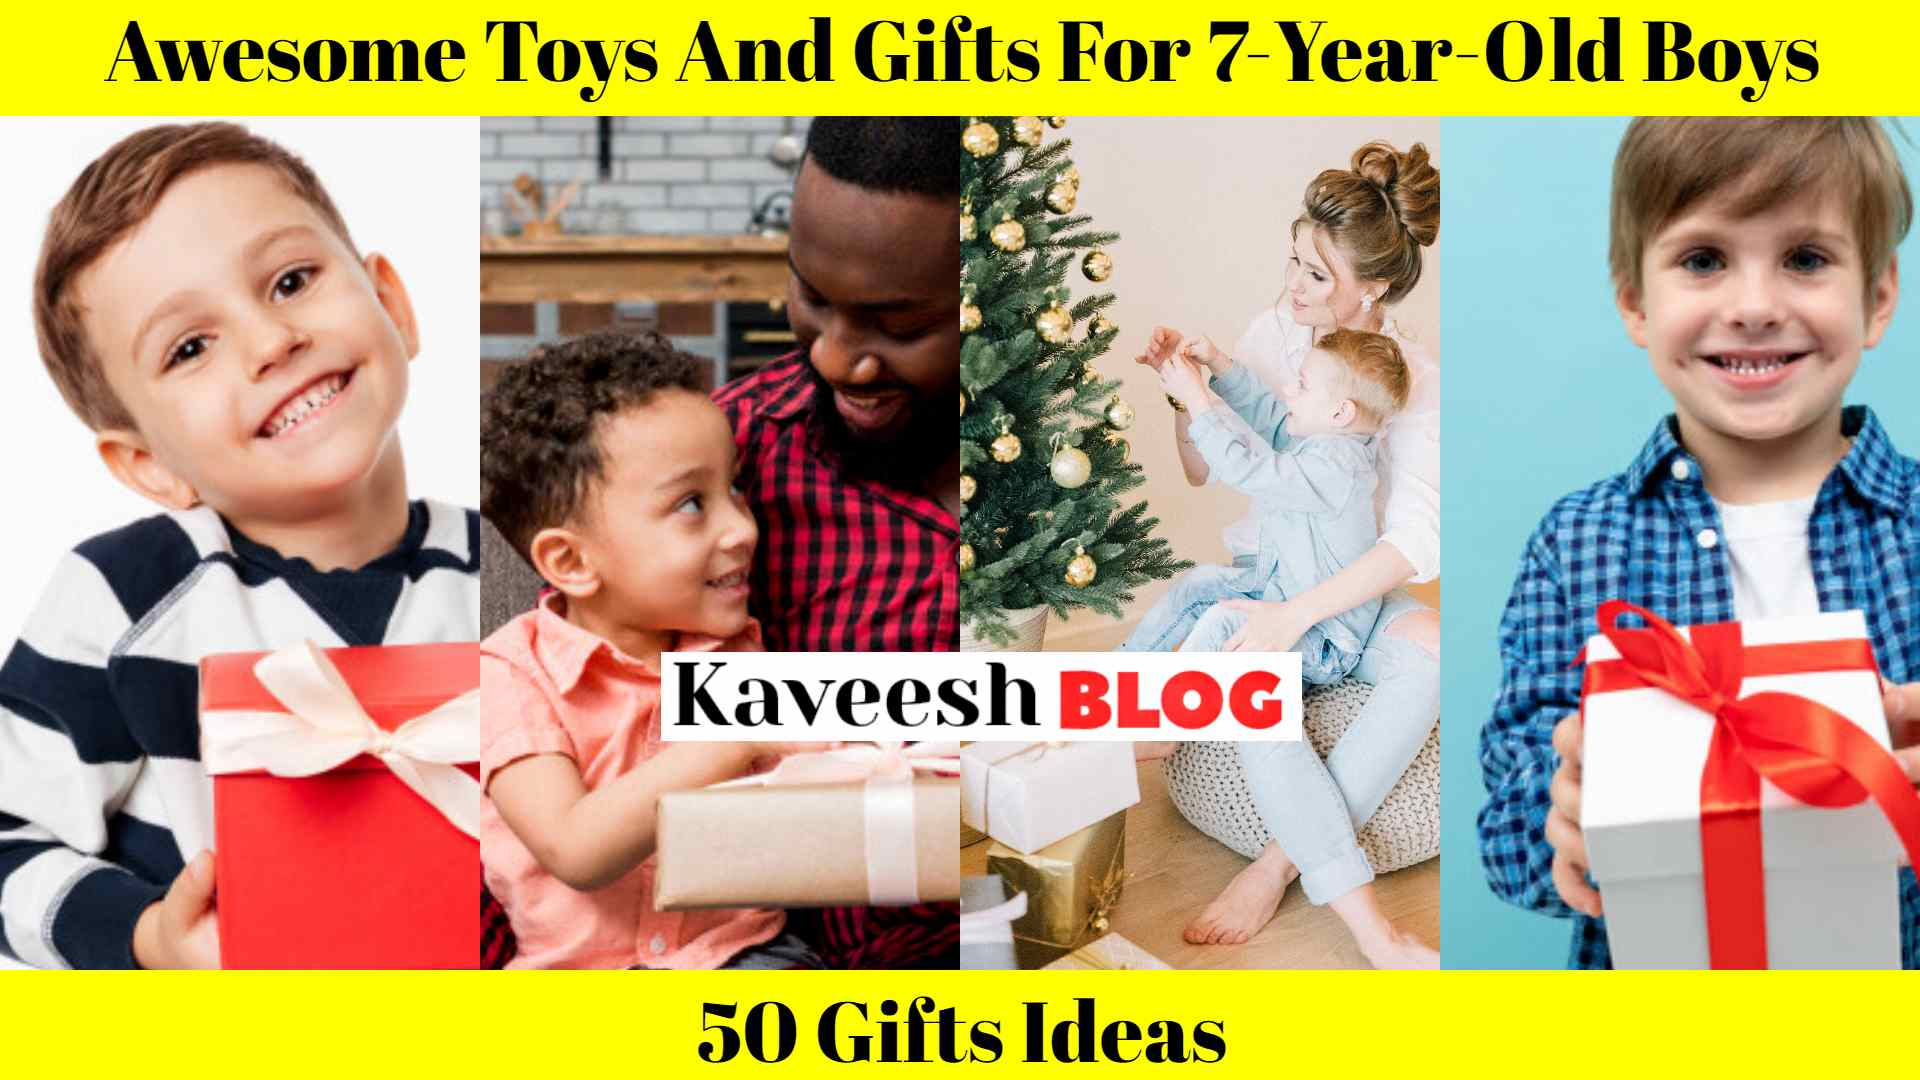 Best Gifts For 7-year-old Boys In (2020) 50 Gifts Ideas